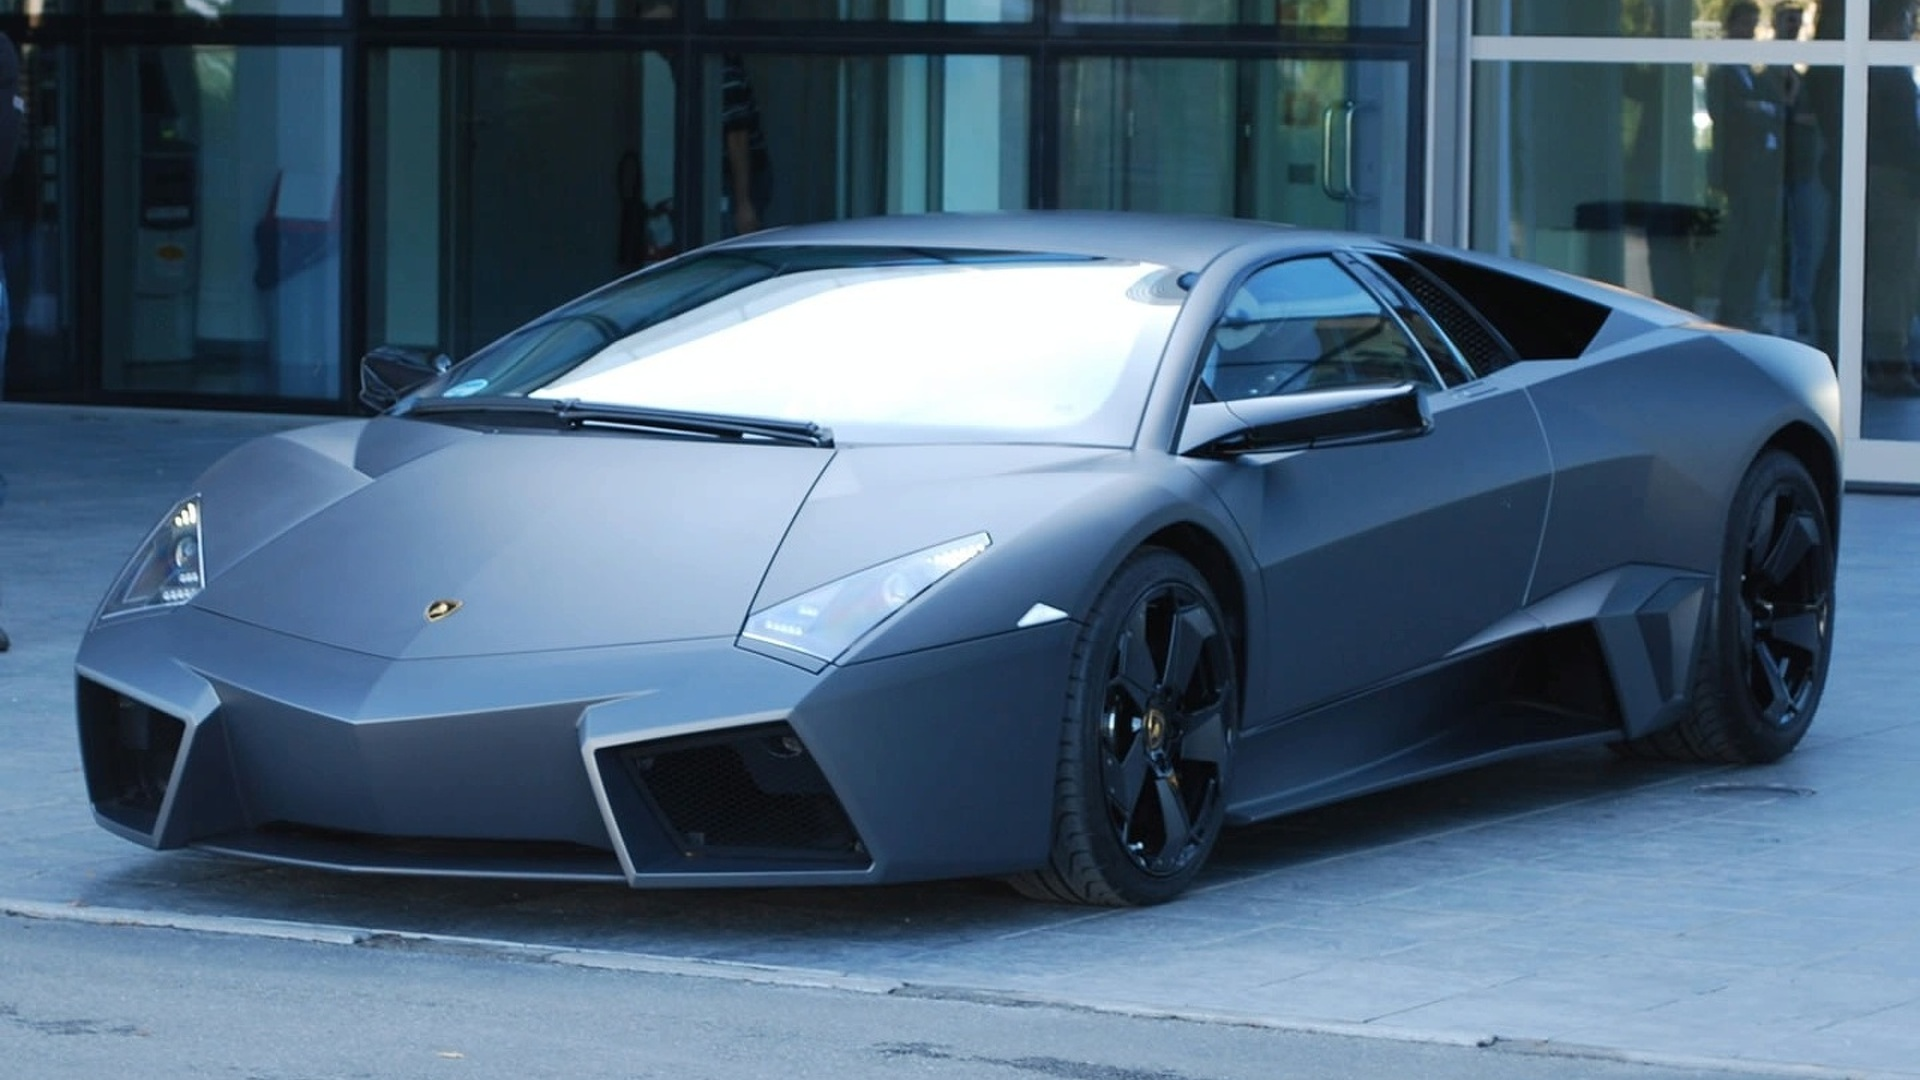 Lamborghini Reventon Roadster To Be Unveiled To Select Clients Today